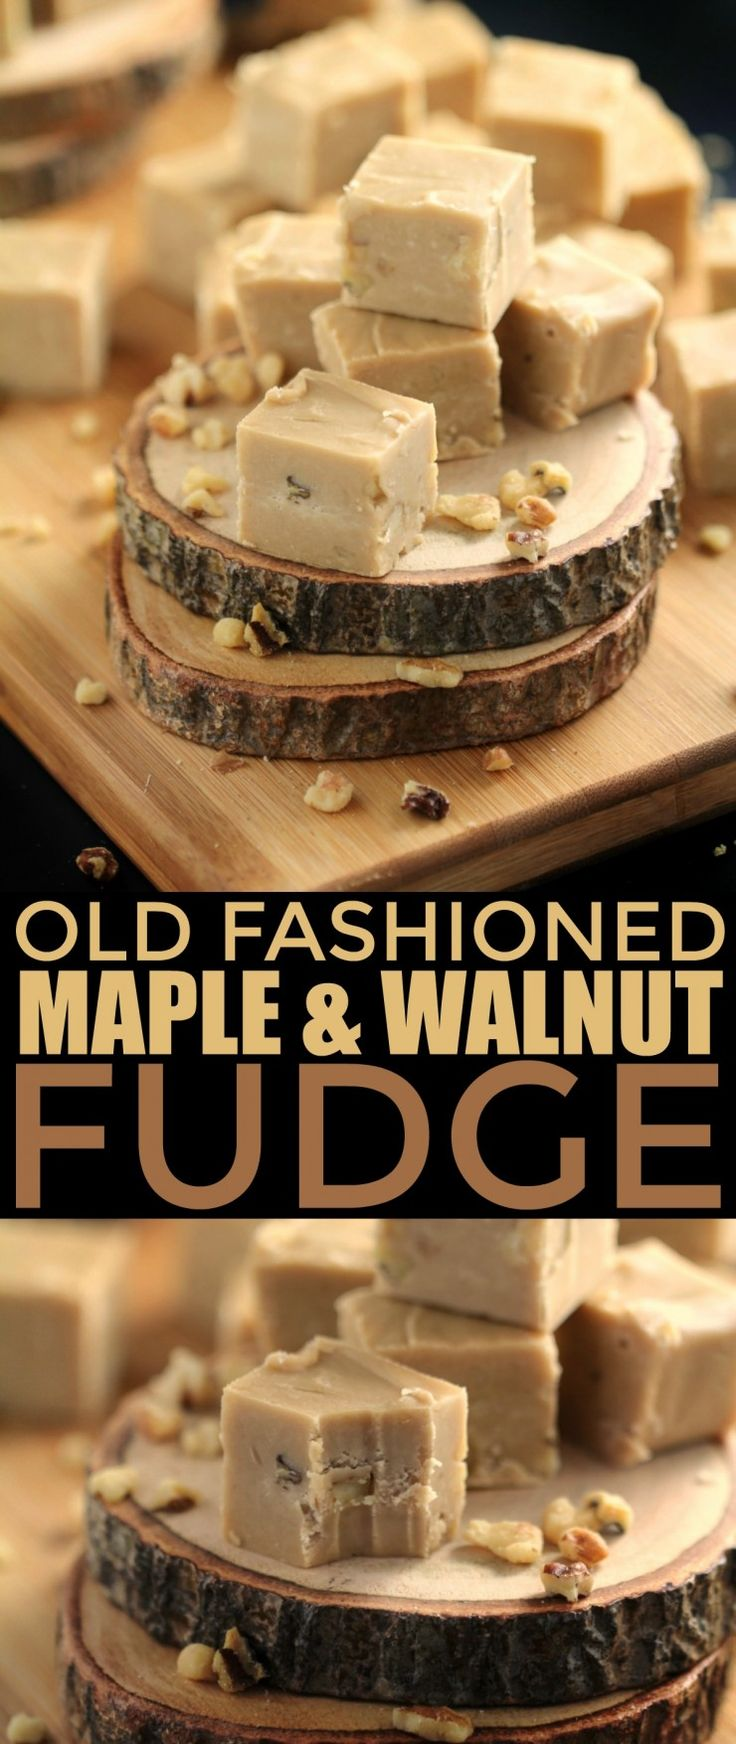 Super rich and ever-so-creamy, this Old Fashioned Maple & Walnut Fudge is the perfect treat for maple syrup season. Made with real Maple Syrup, cream, butter and walnuts.